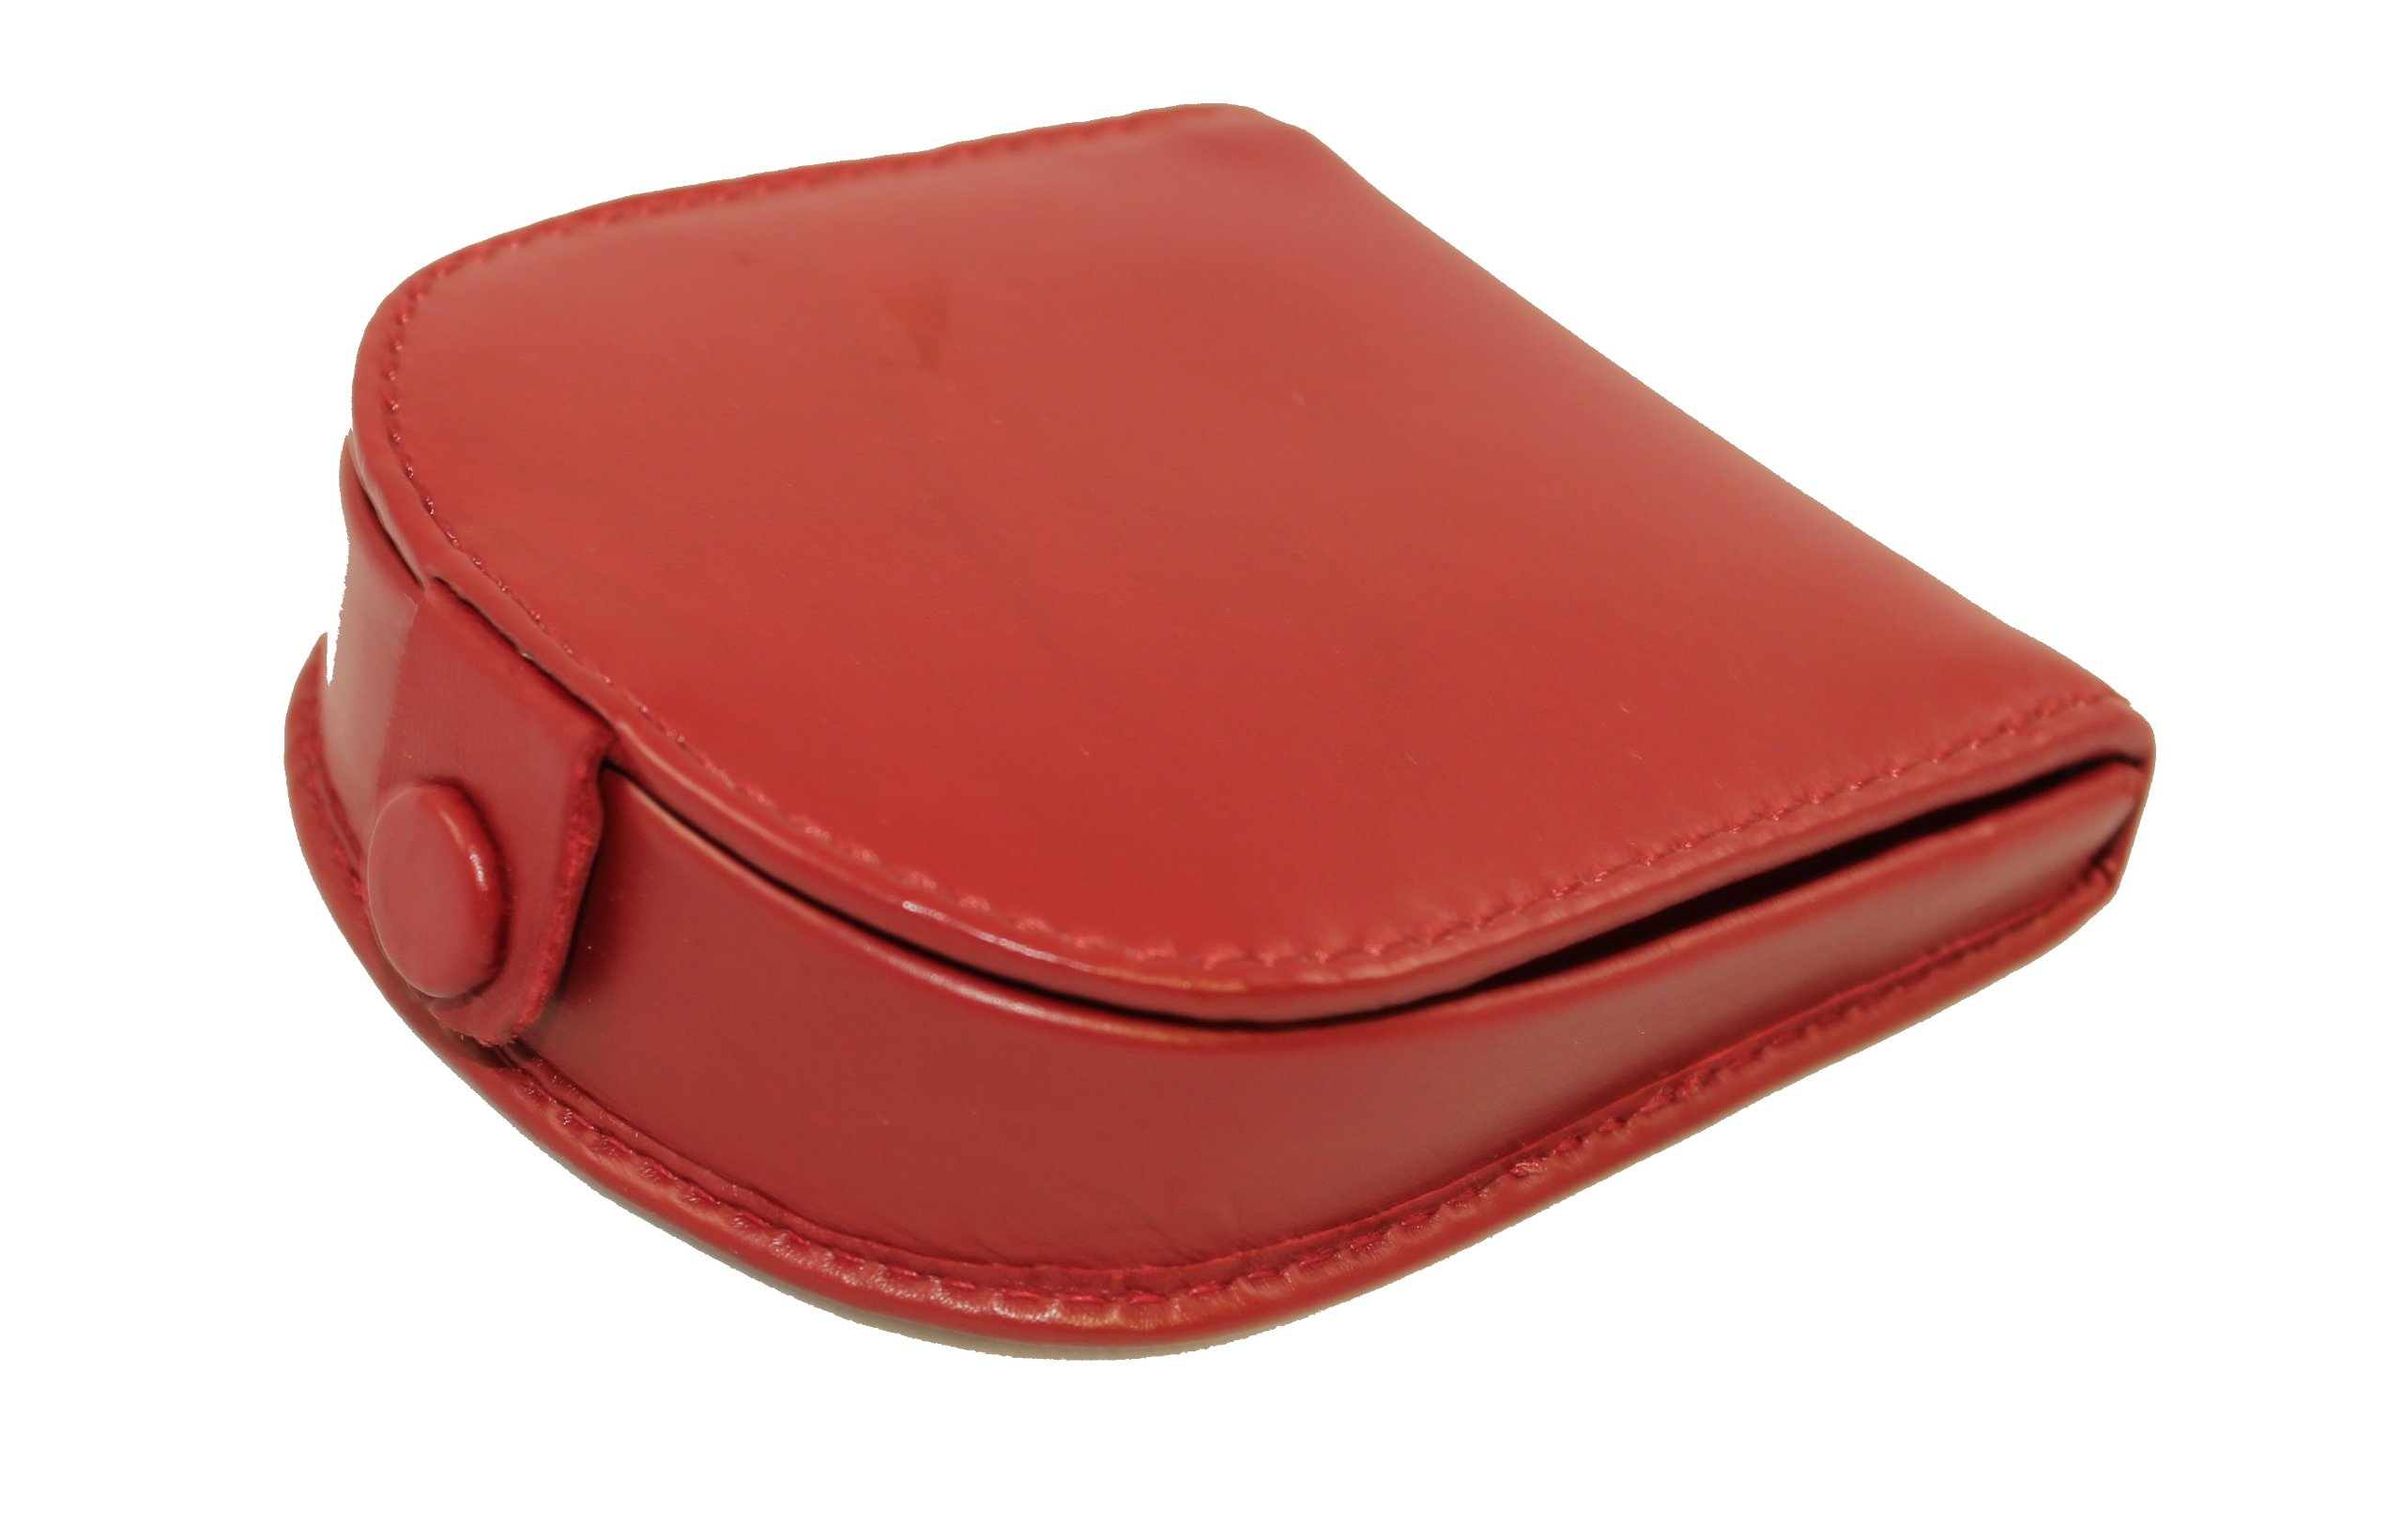 5dfd8244d8 Visconti Polo T-5 Brown Soft Leather Coin Purse Pouch Tray/Change Holder  (Red)